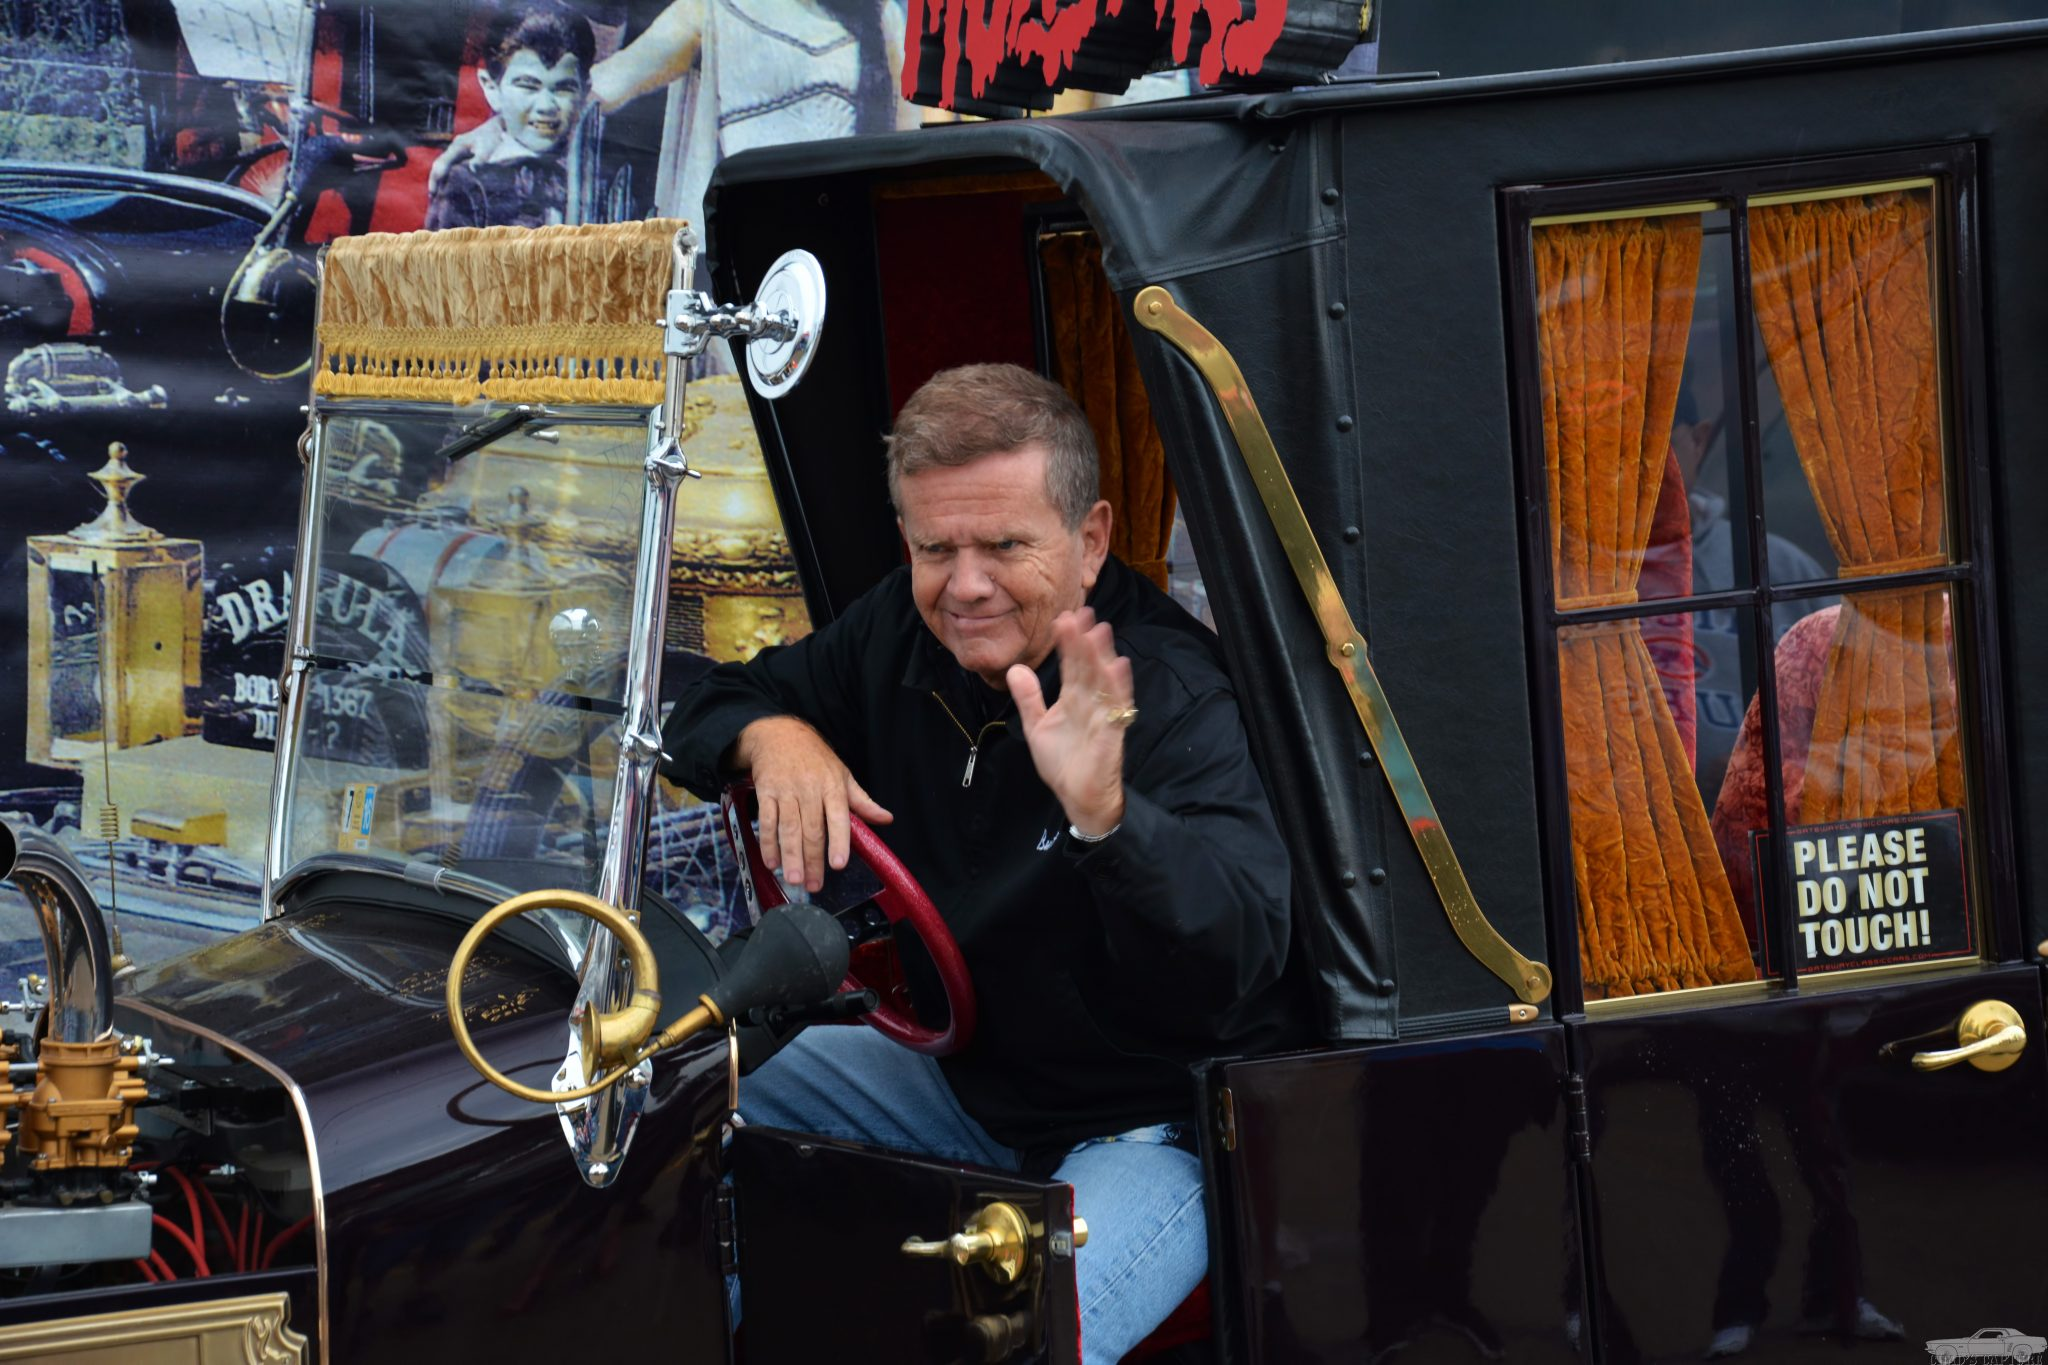 Butch Patrick, also known as Eddie Munster, waves from the Munsters Koach. Flickr/Chad Horwedel